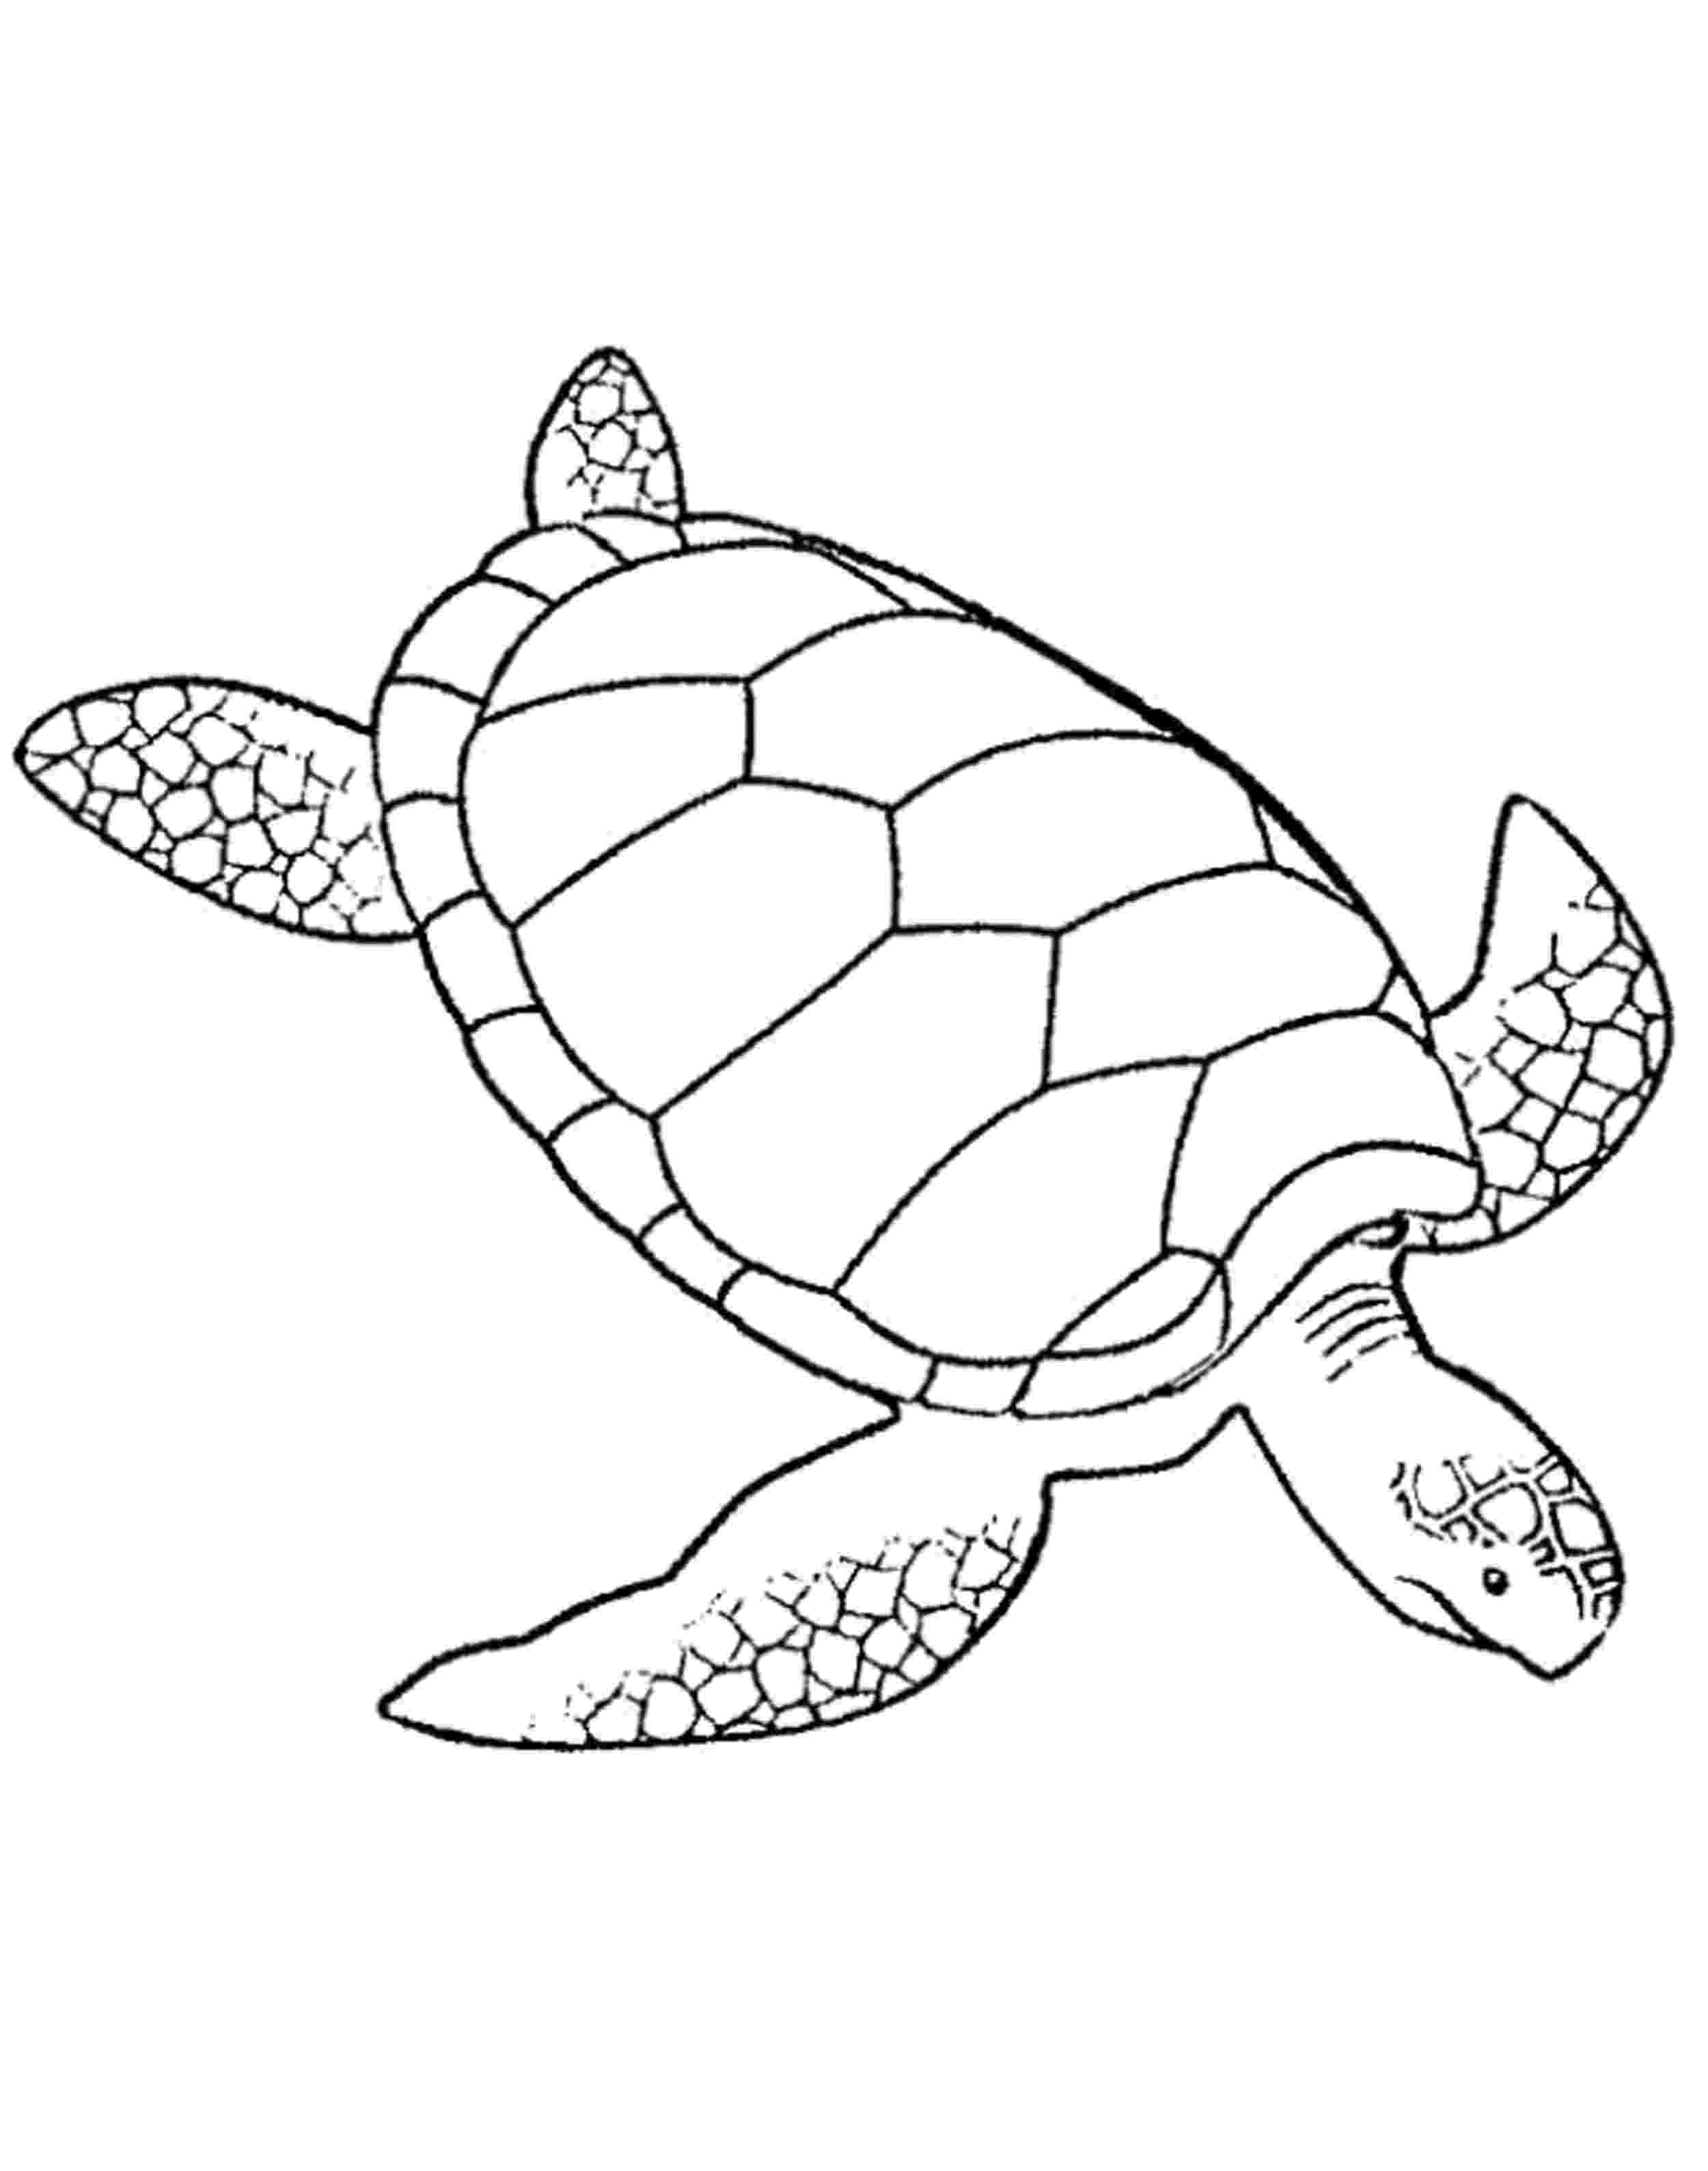 coloring page of turtle turtle coloring pages getcoloringpagescom turtle page of coloring